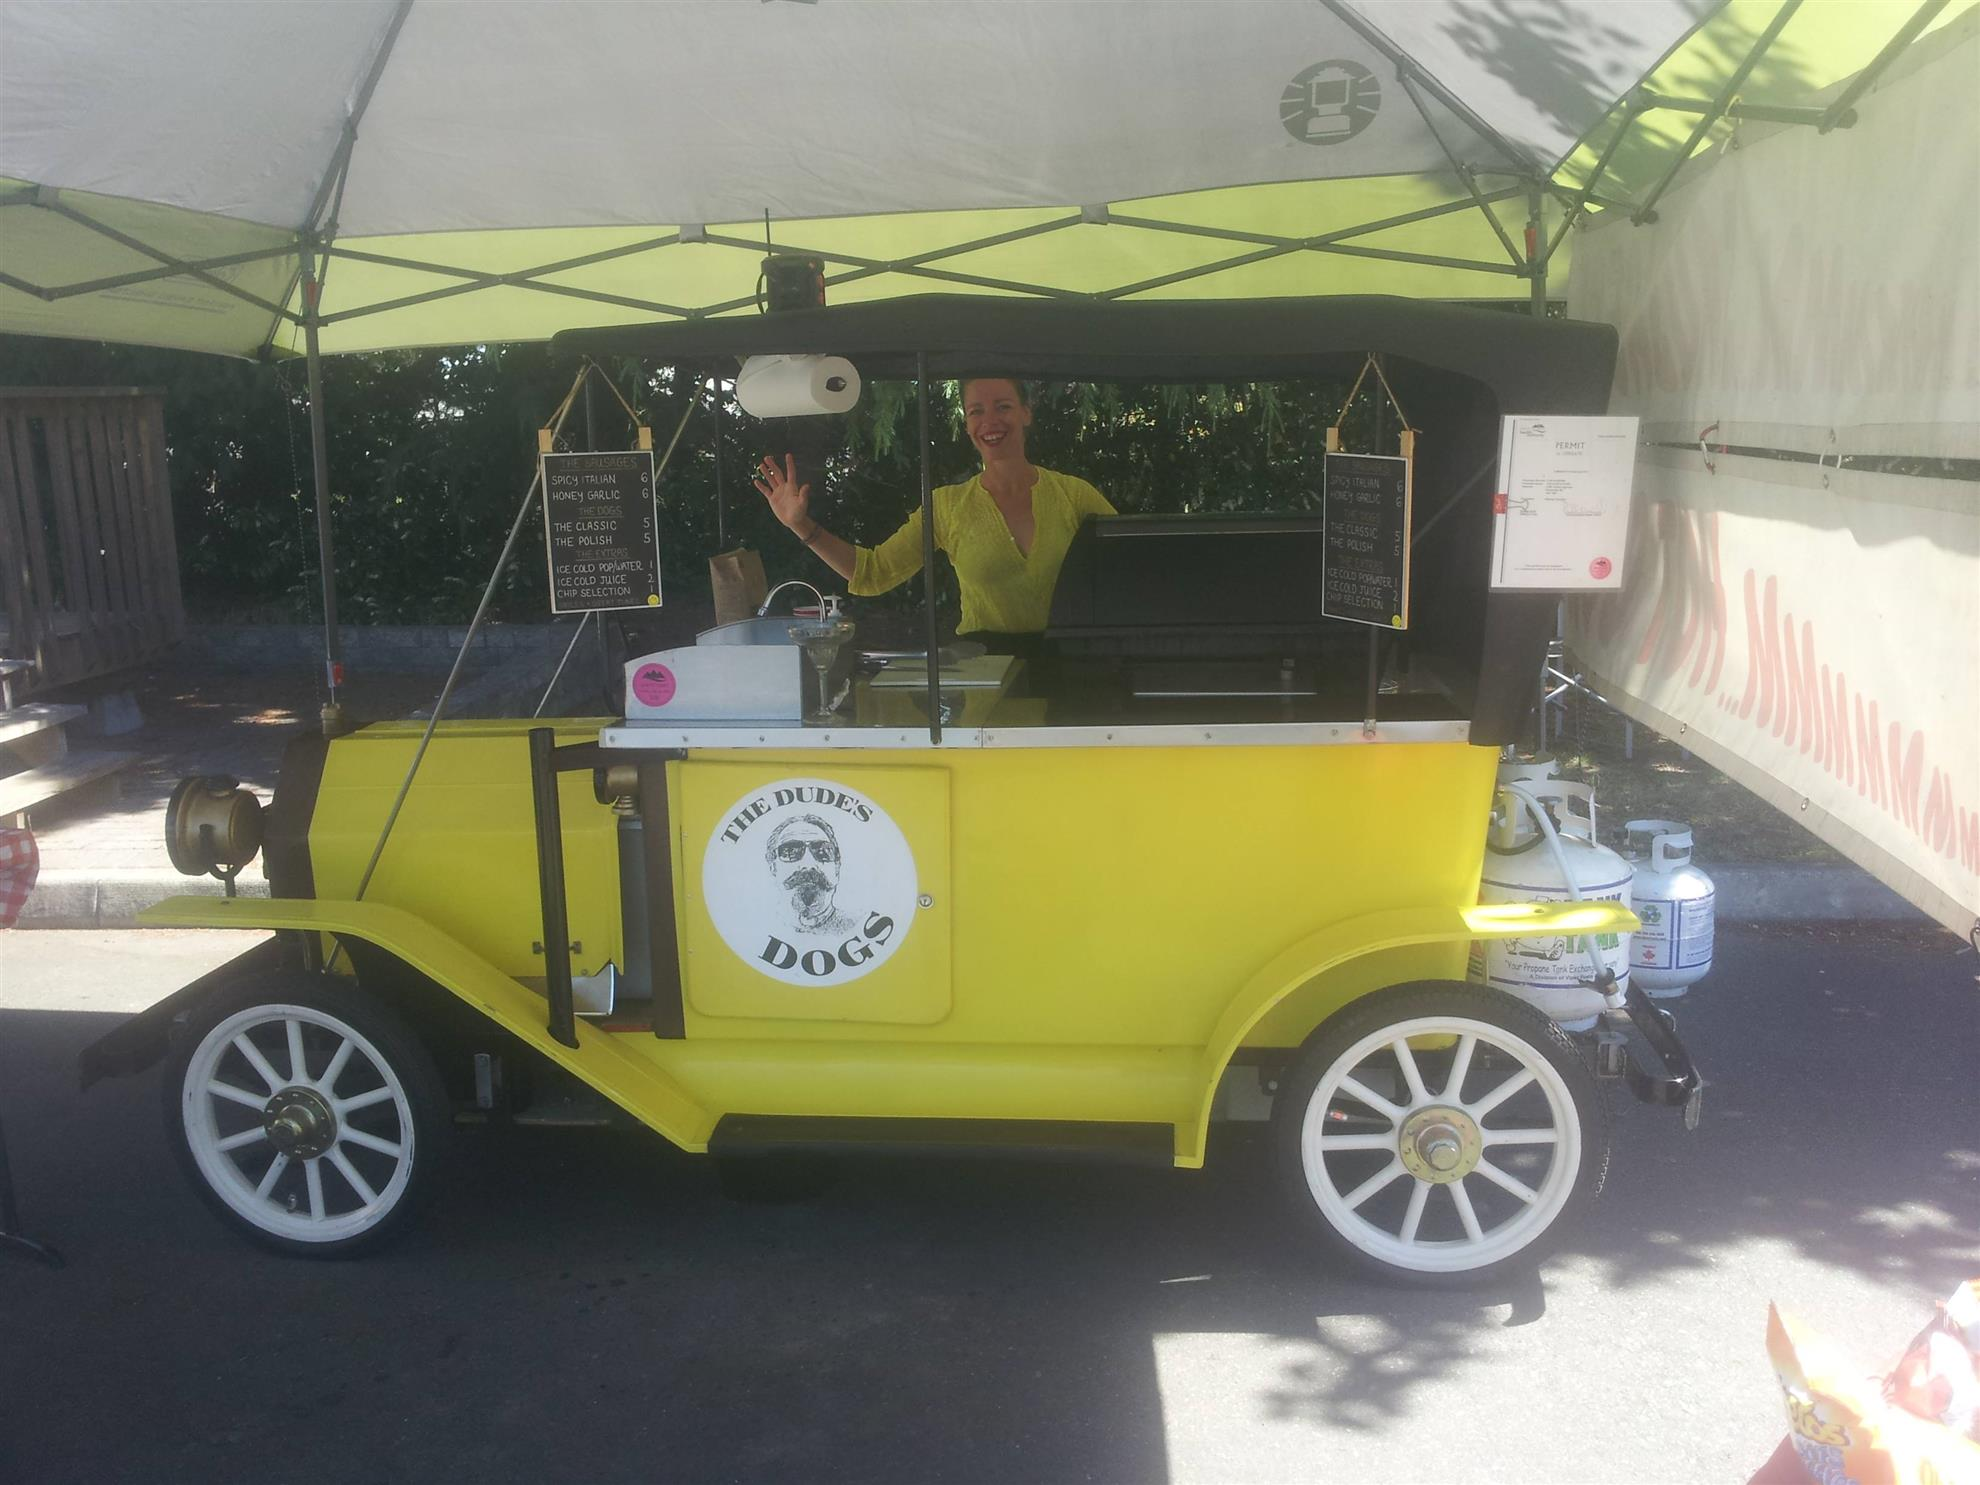 Stories Rotary Club Of Parksville Am How To Choose An Electric Fan In 4 Easy Steps Grumpys Performance Our Ballenas Interact Offered A Variety Cold Drinks